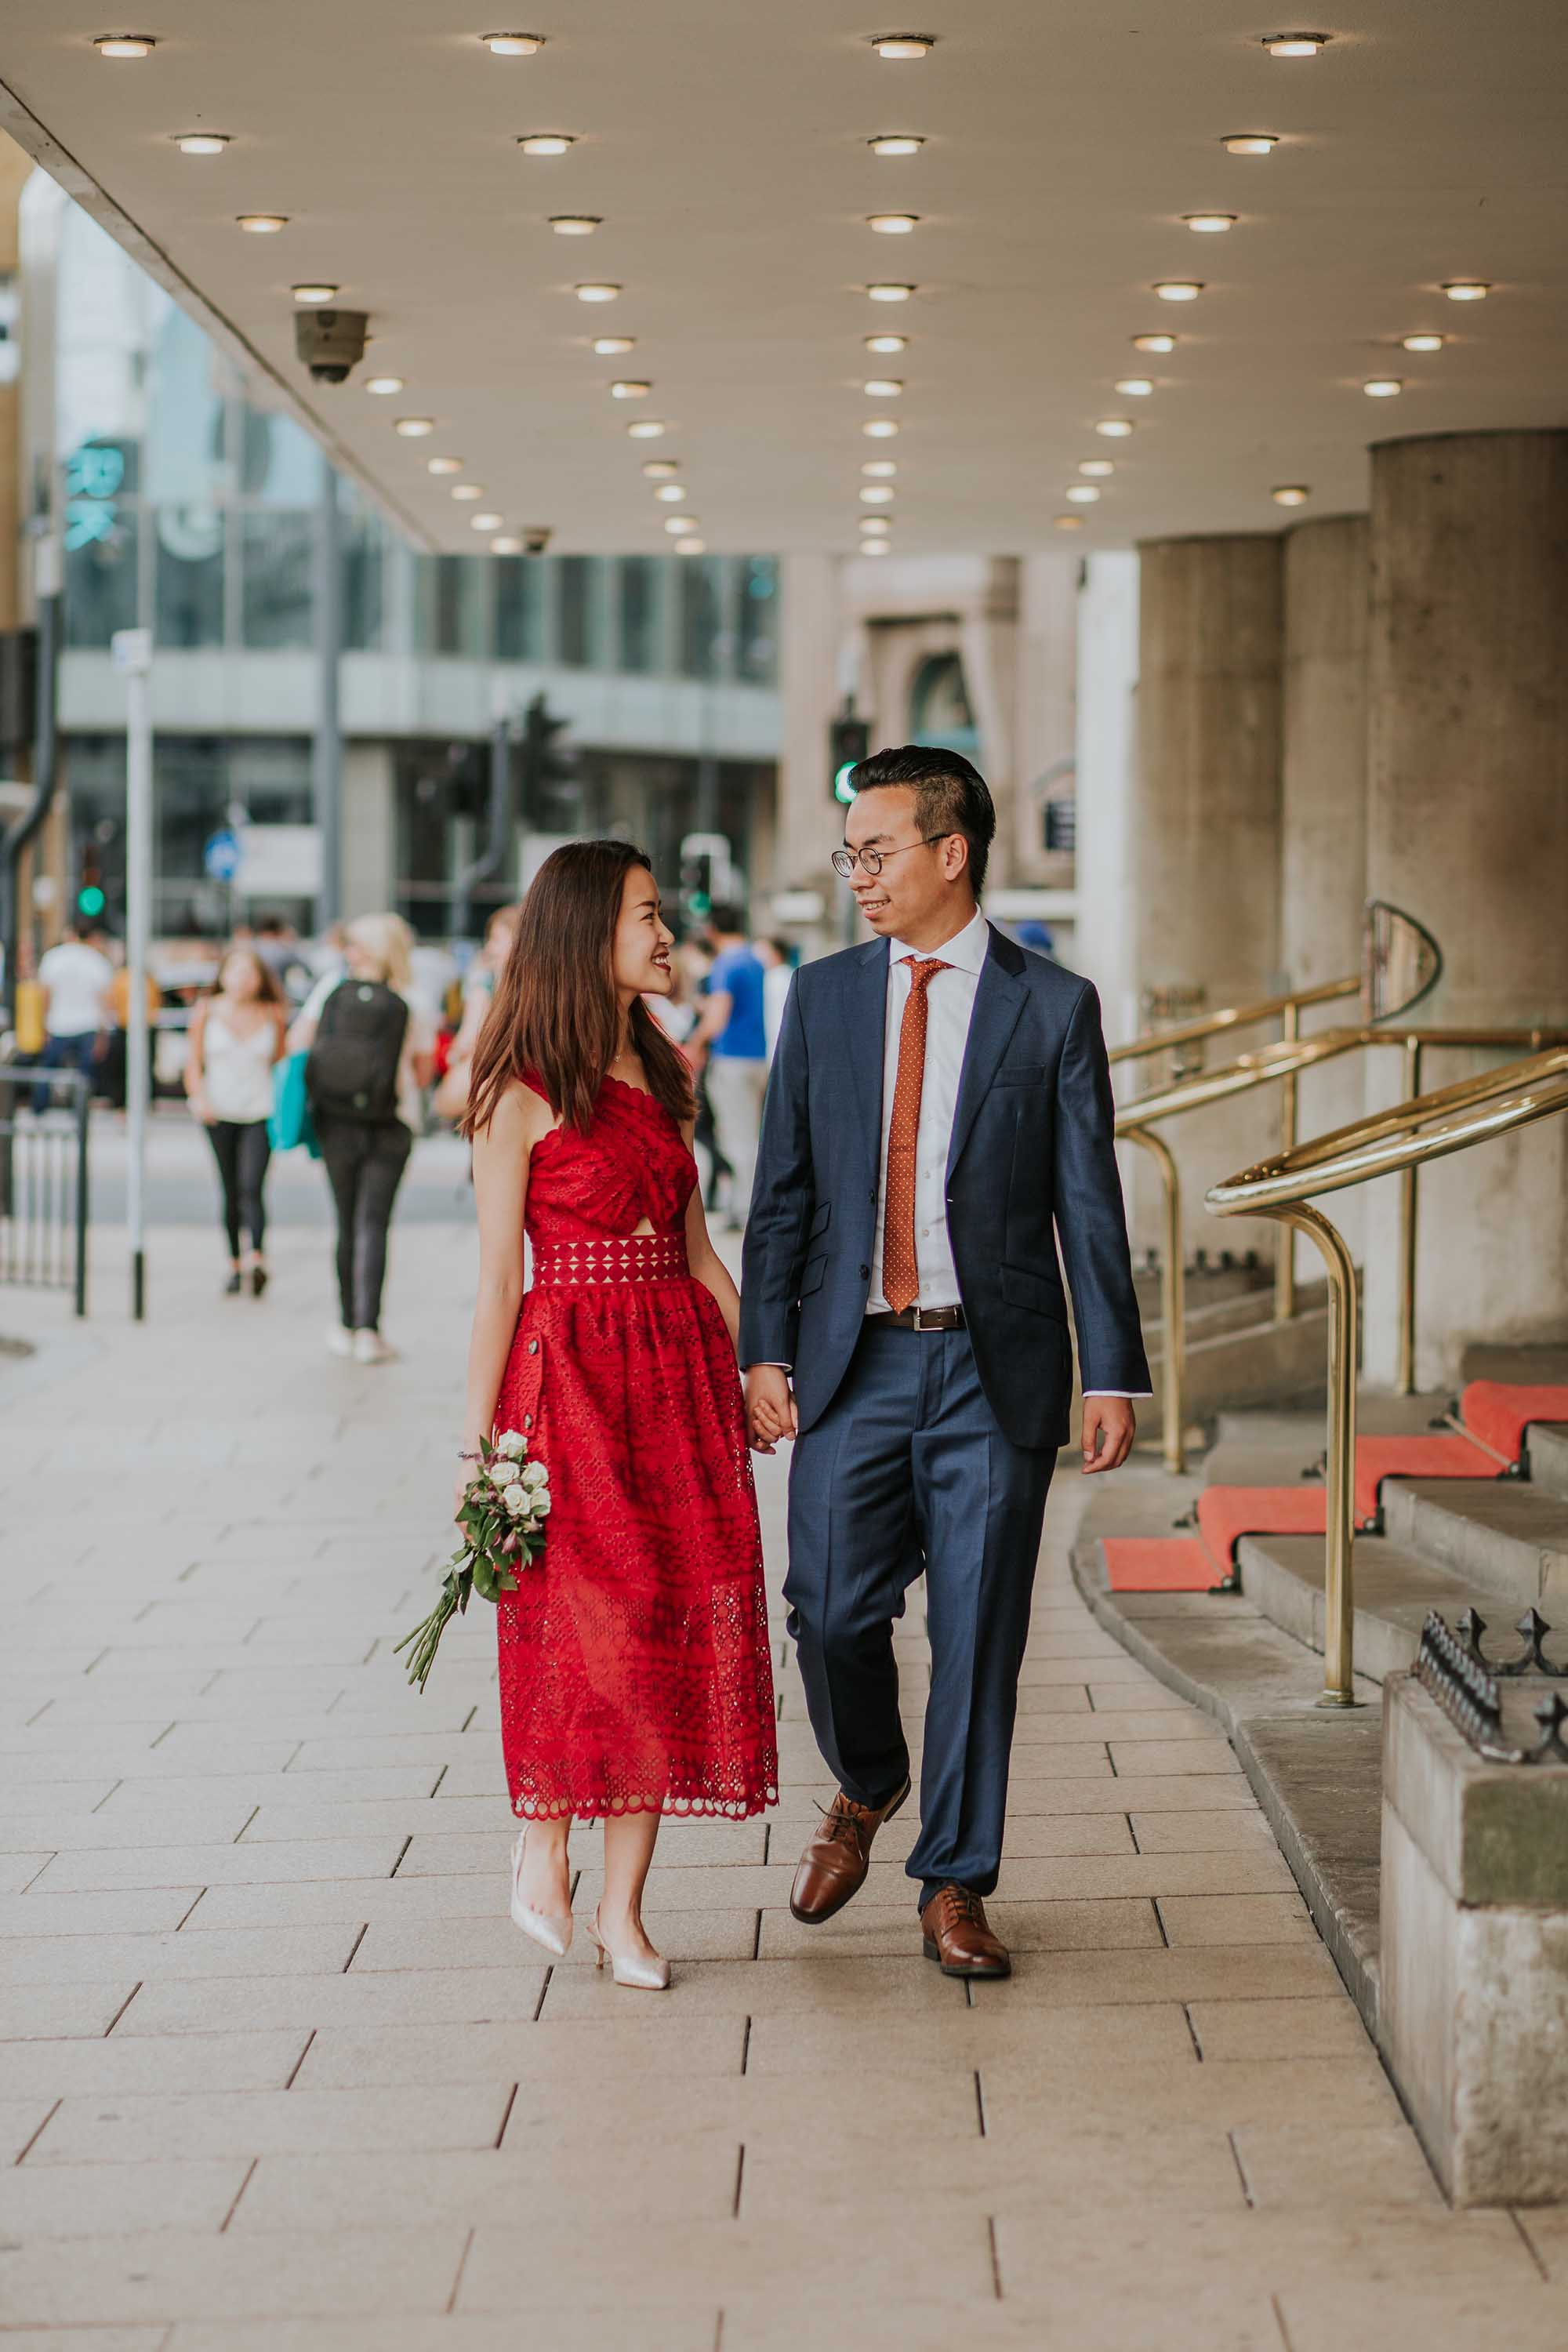 Couple walking together in Leeds